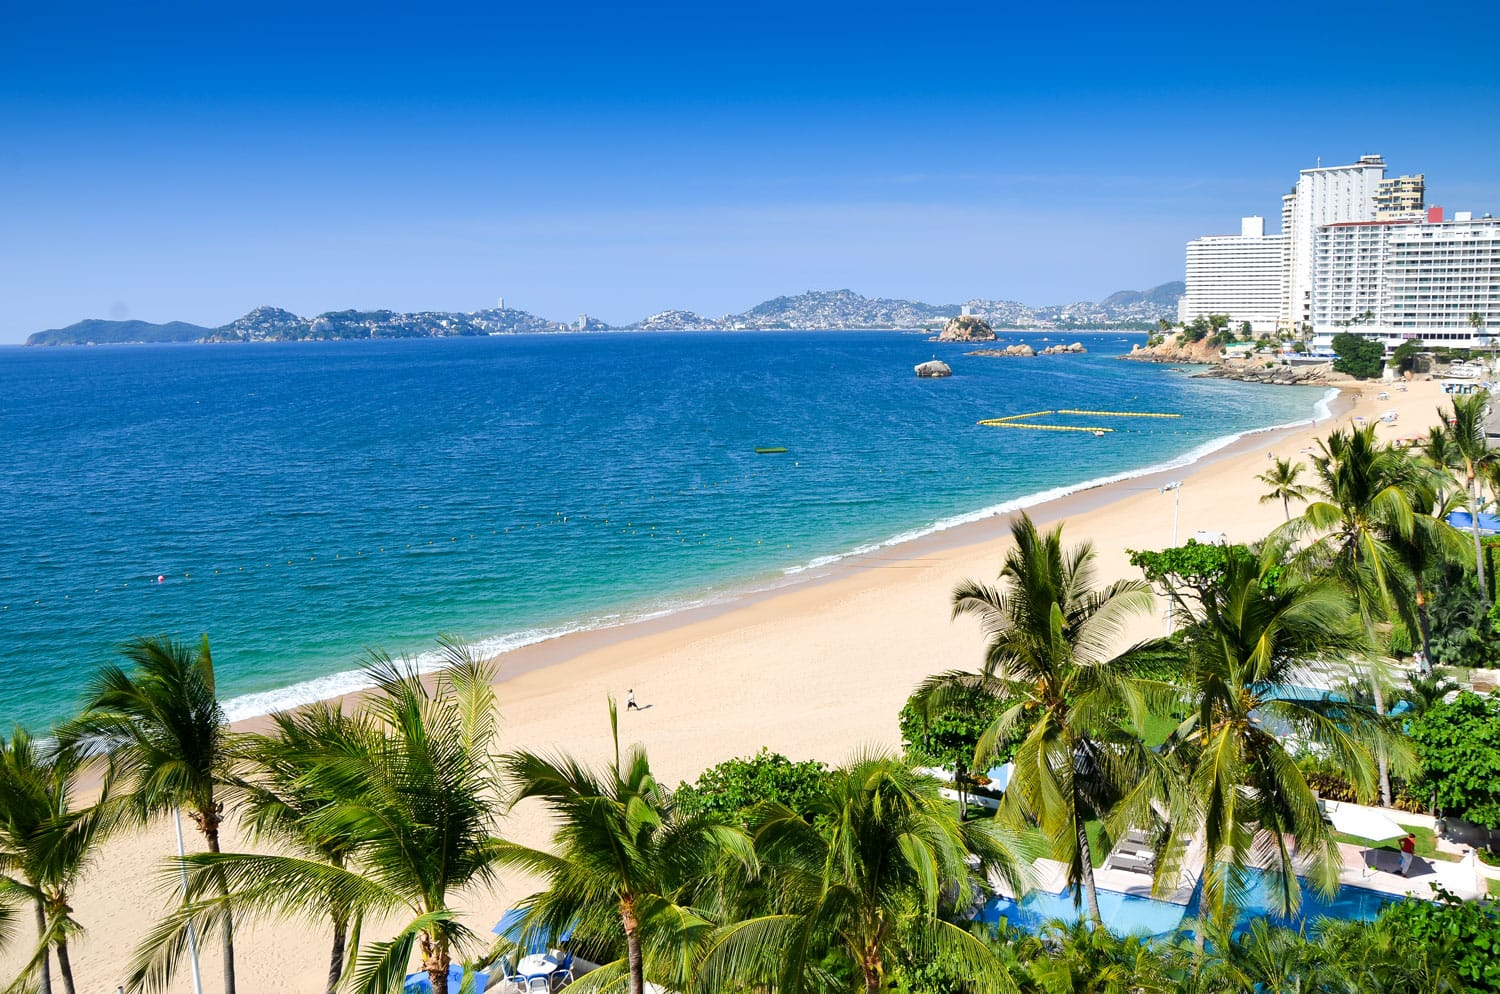 Acapulco Beach in Mexico